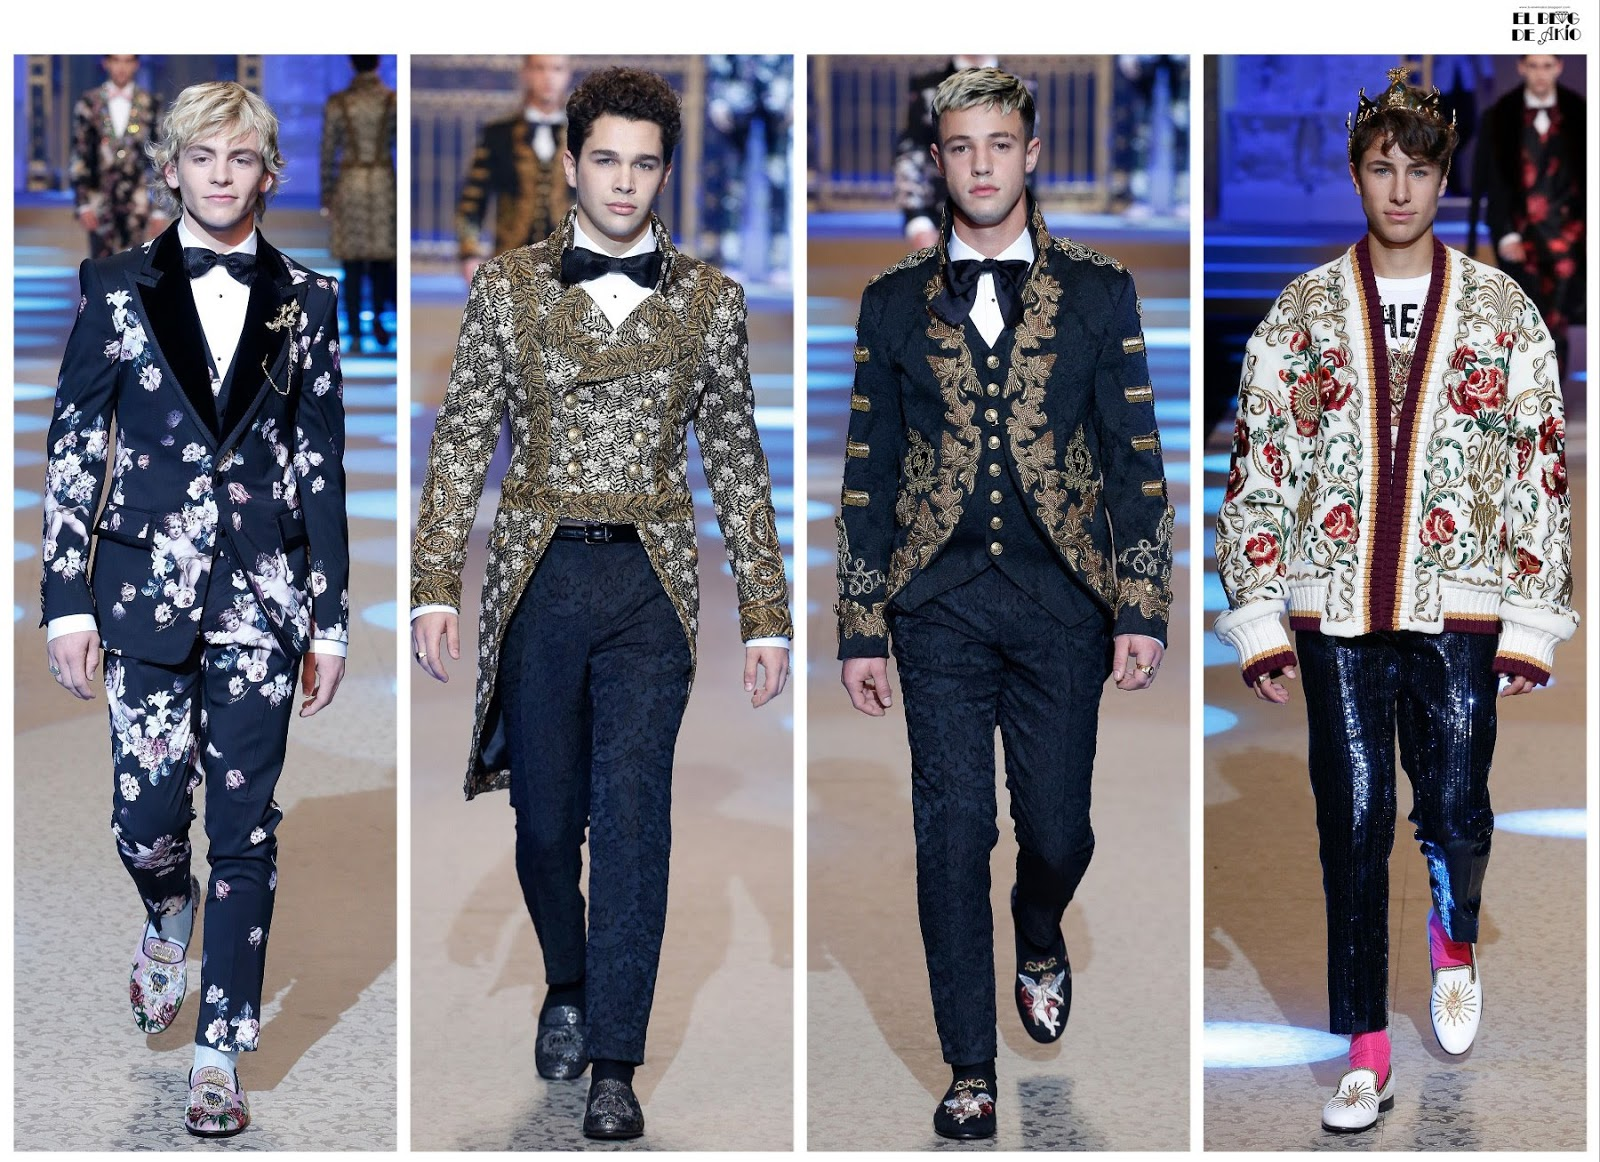 00fa497e69 Desfile Dolce Gabbana Menswear Fall Winter 2018 2019 en Milan Petti Uomo  (fotos y videos)